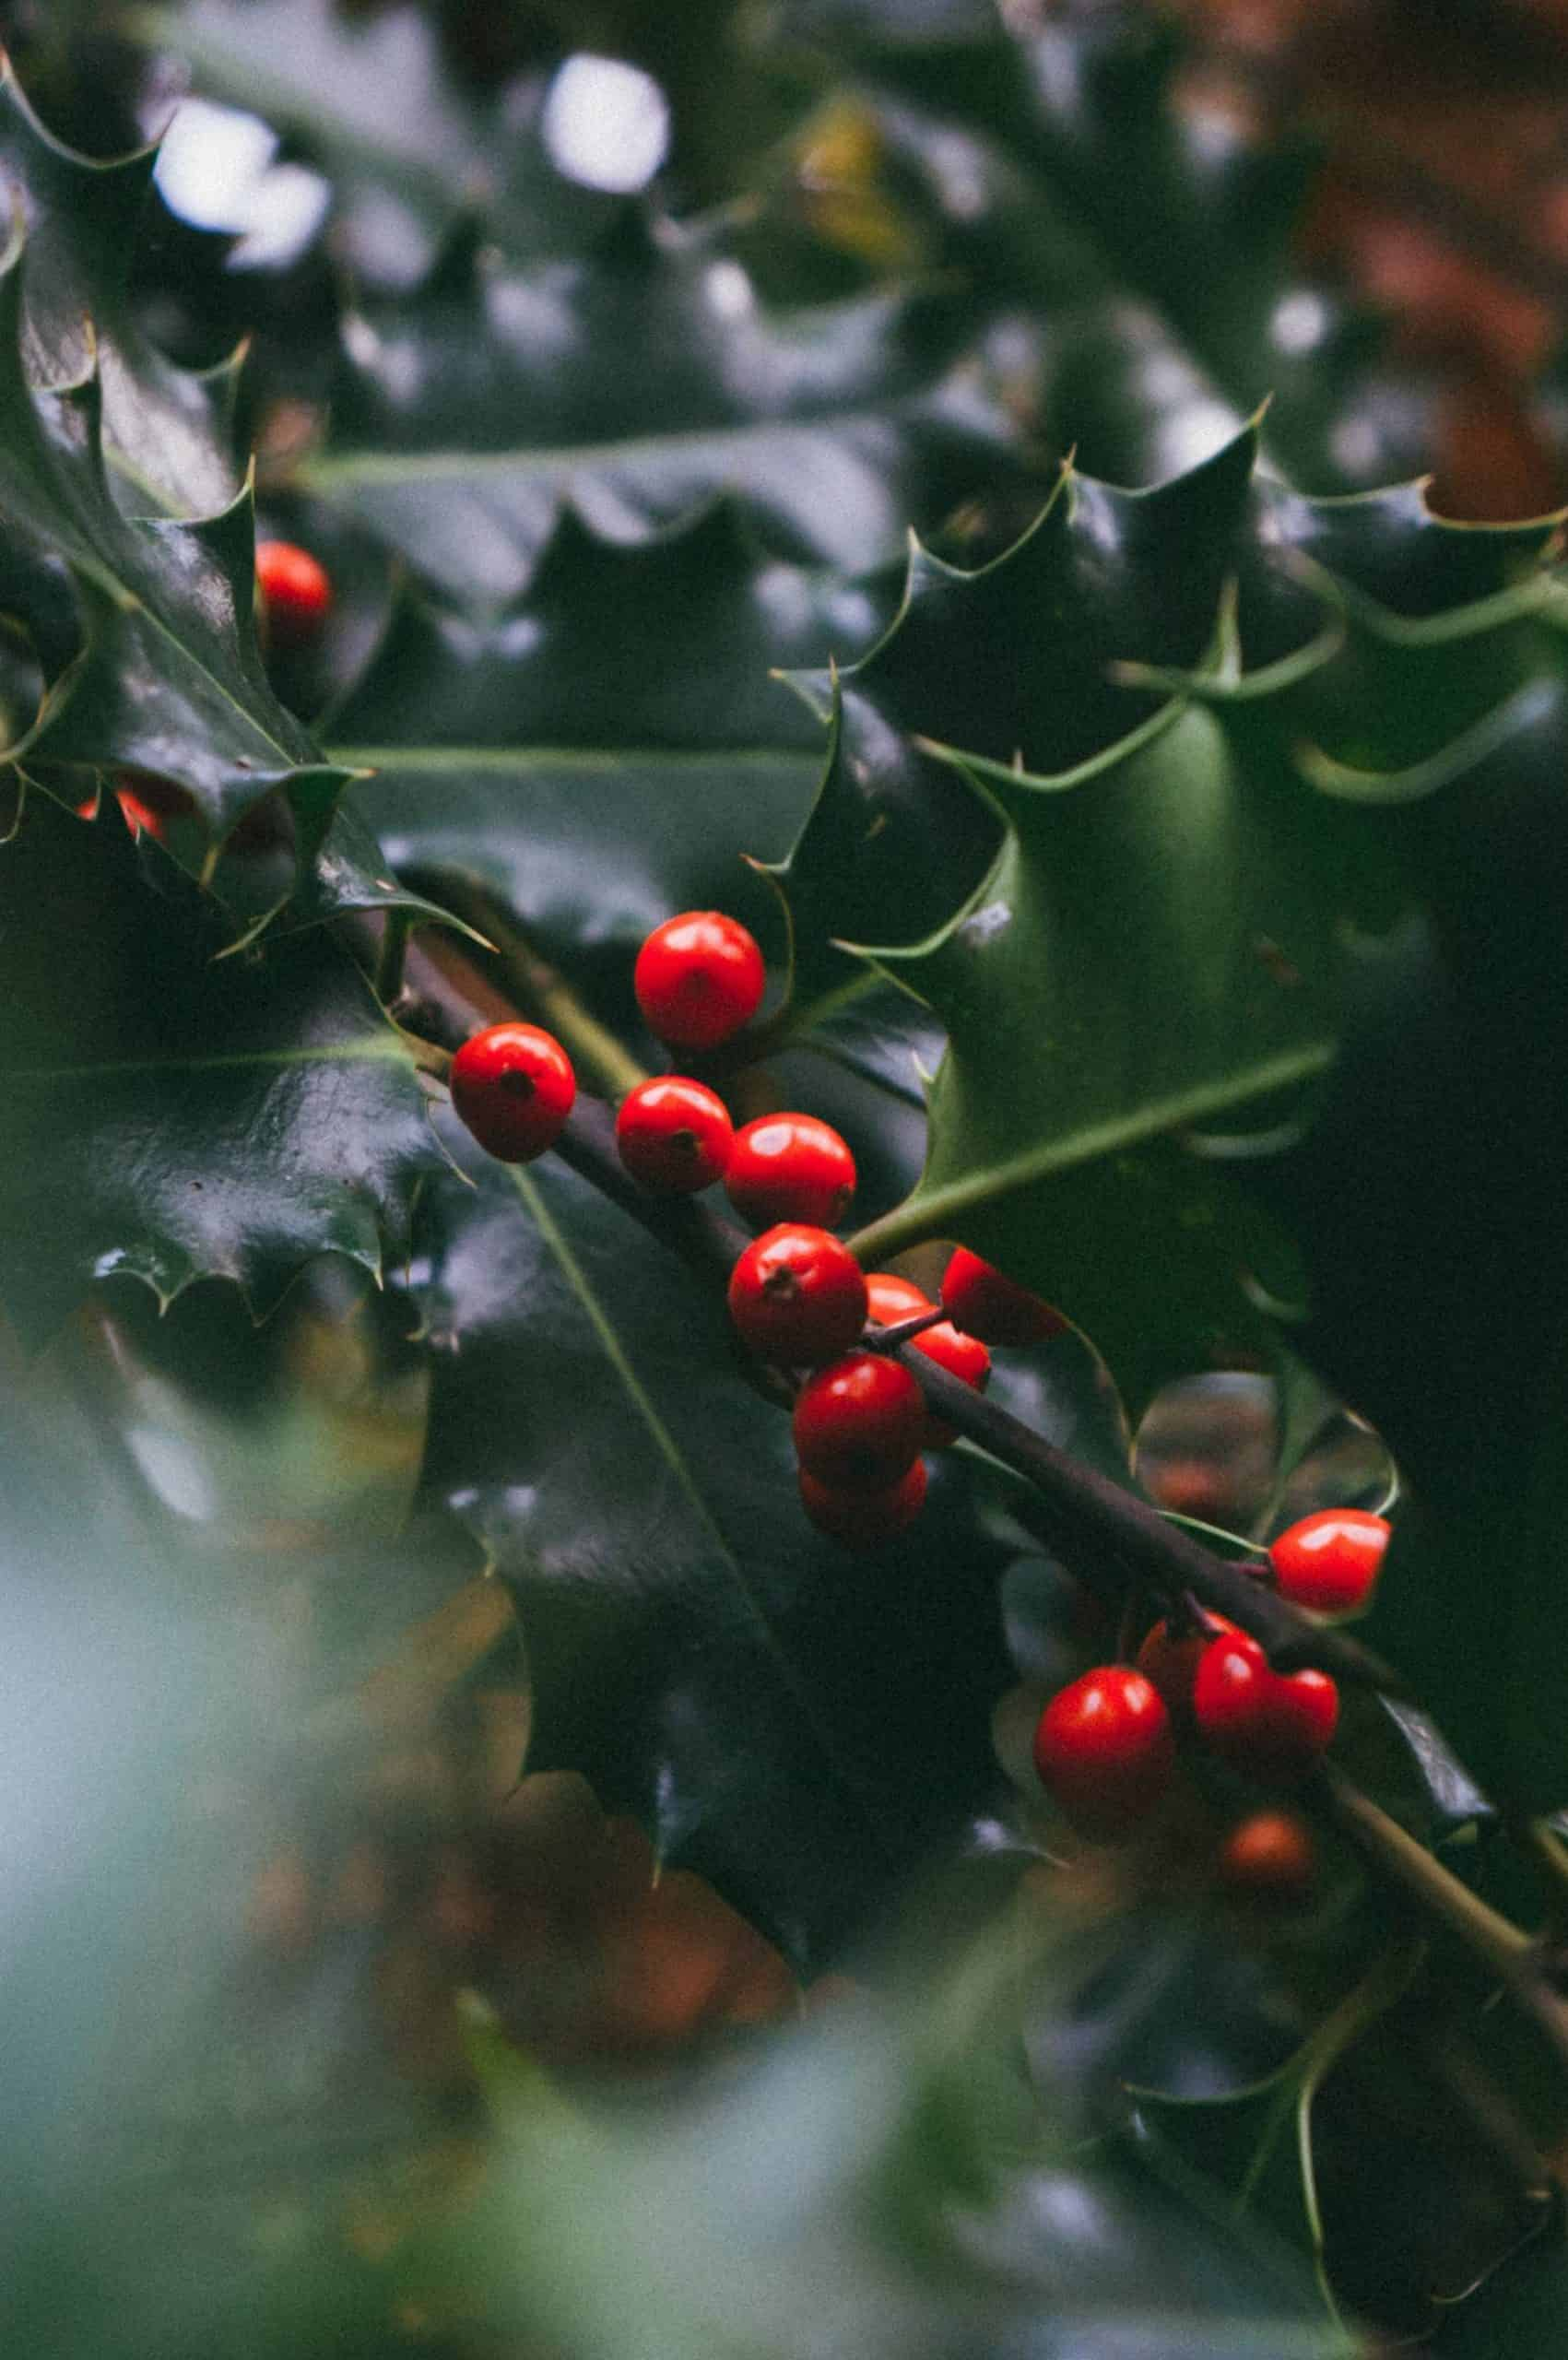 The history of Christmas plants